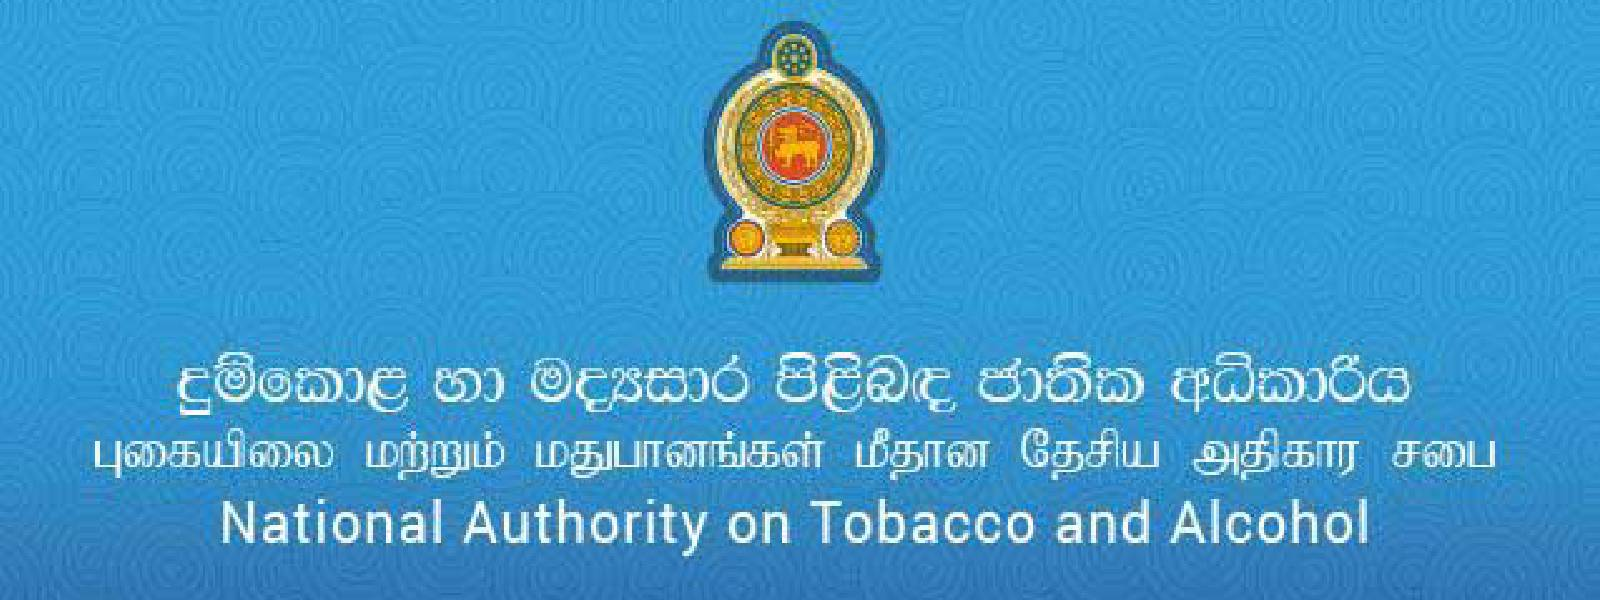 Govt. requested to ban home delivery of liquor, cigarettes